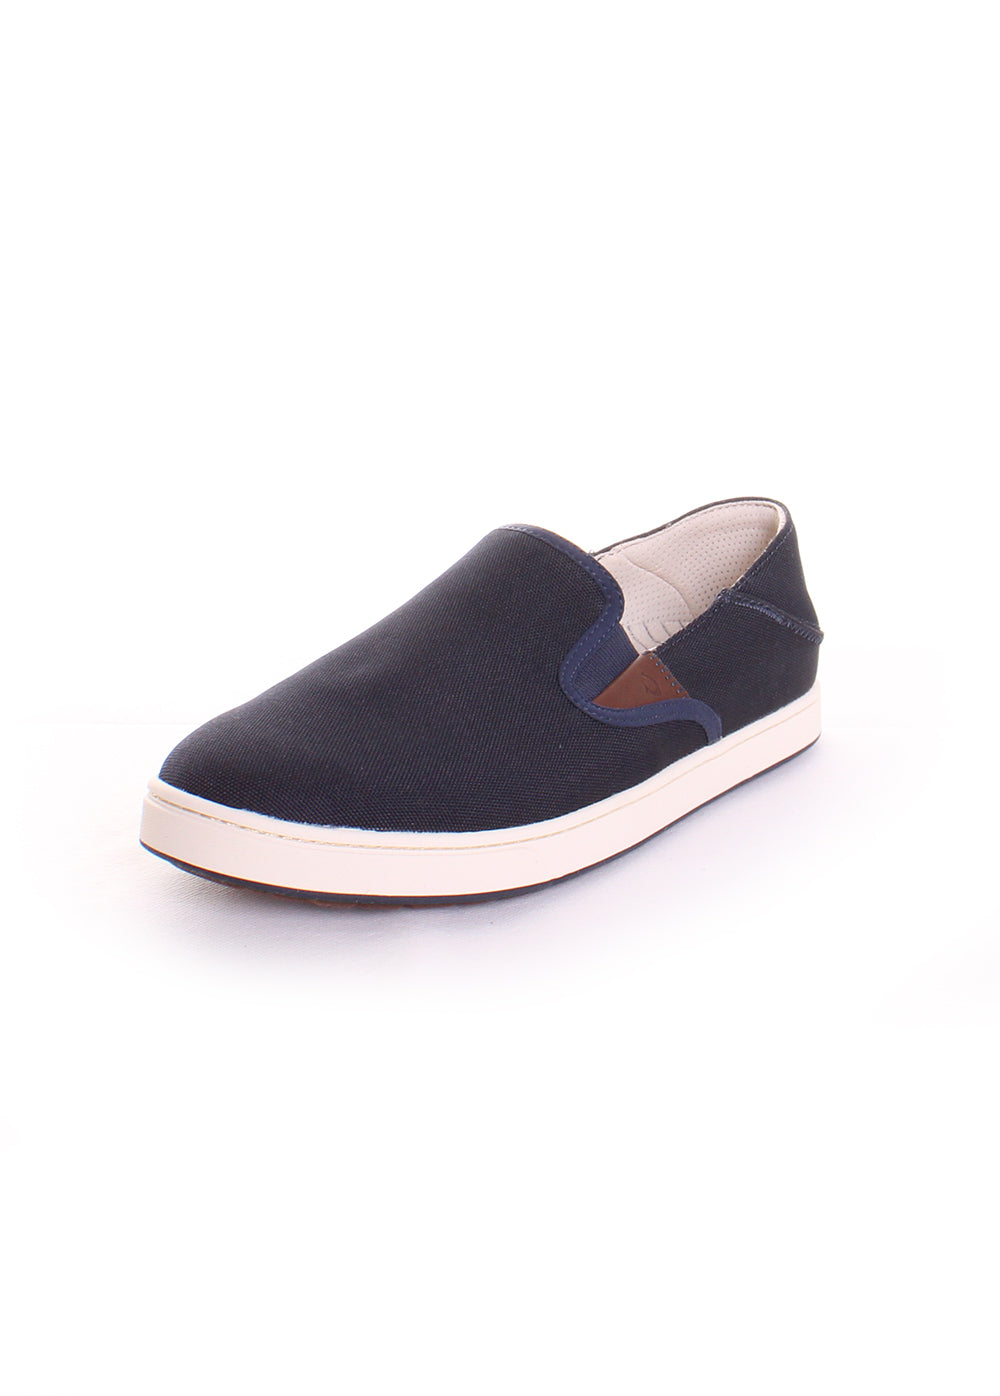 Kahu Slide-On Shoe